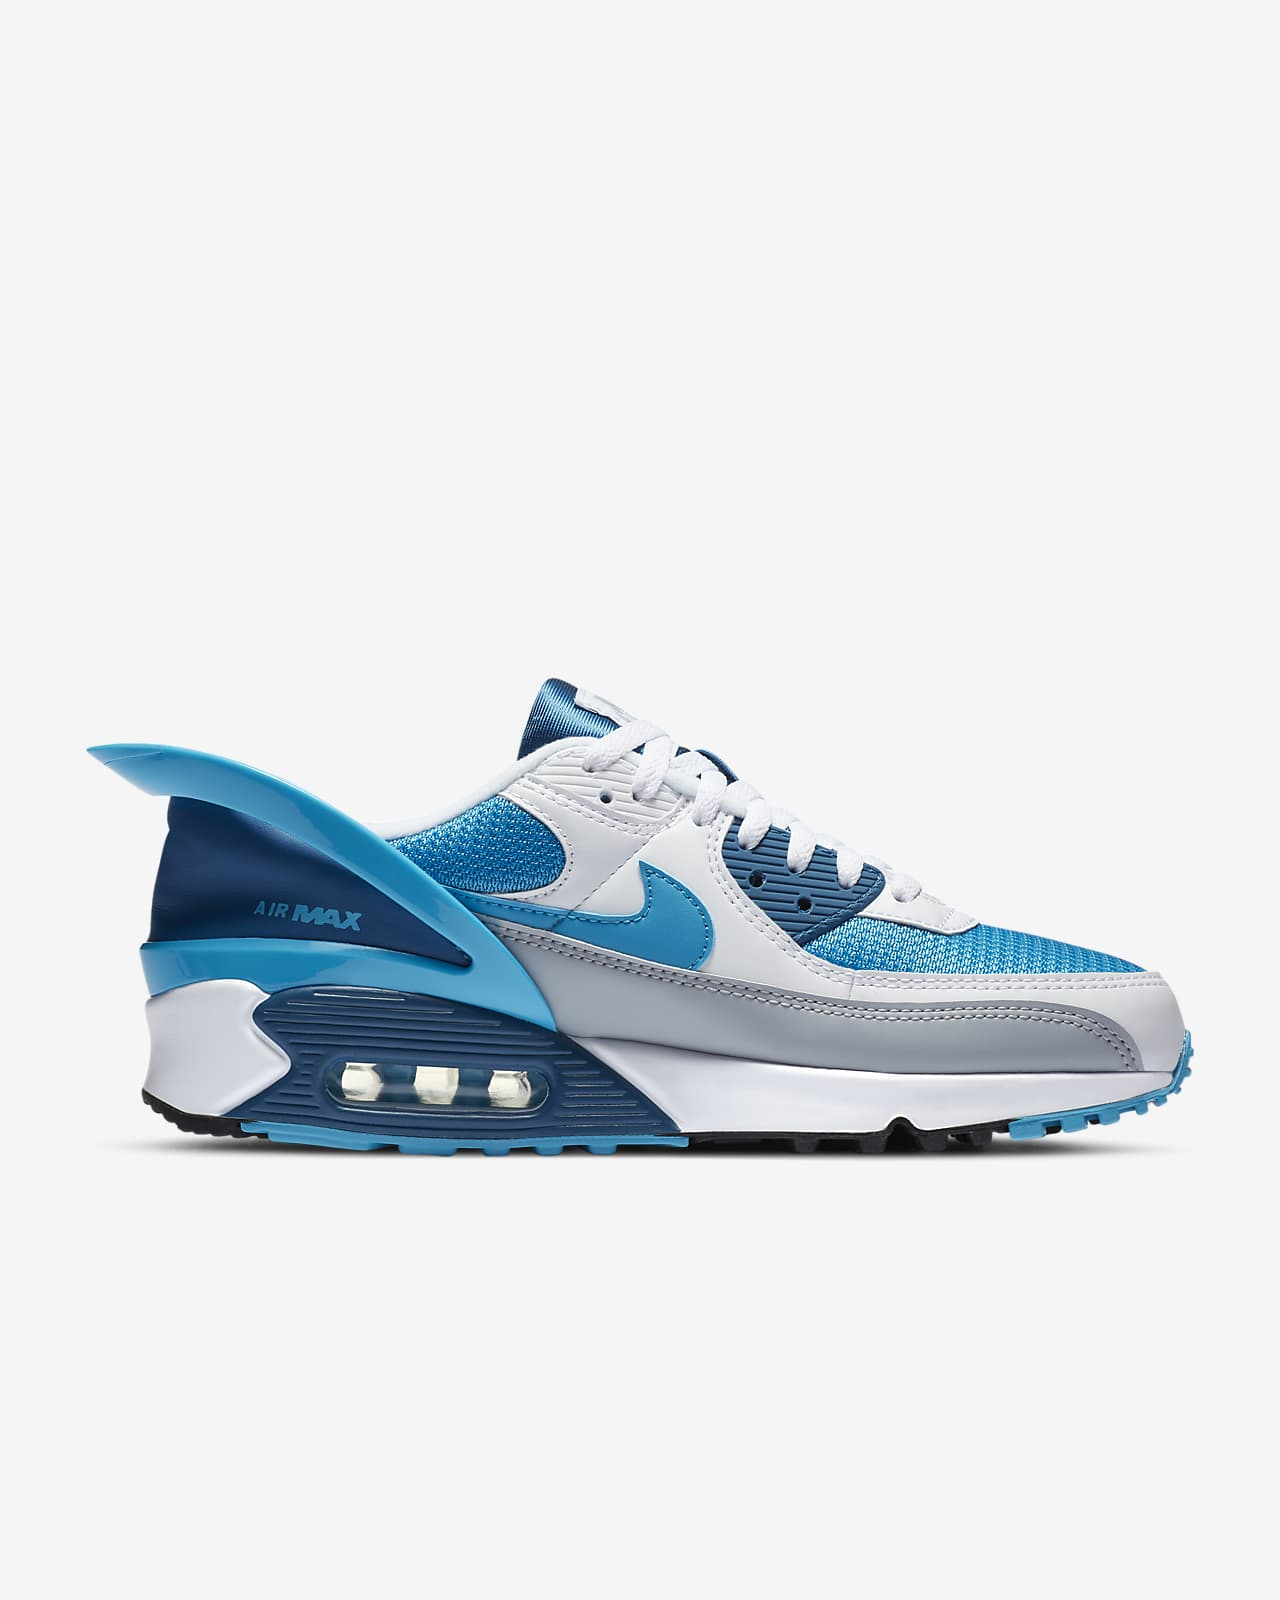 Nike Air Max 90 FlyEase Shoes